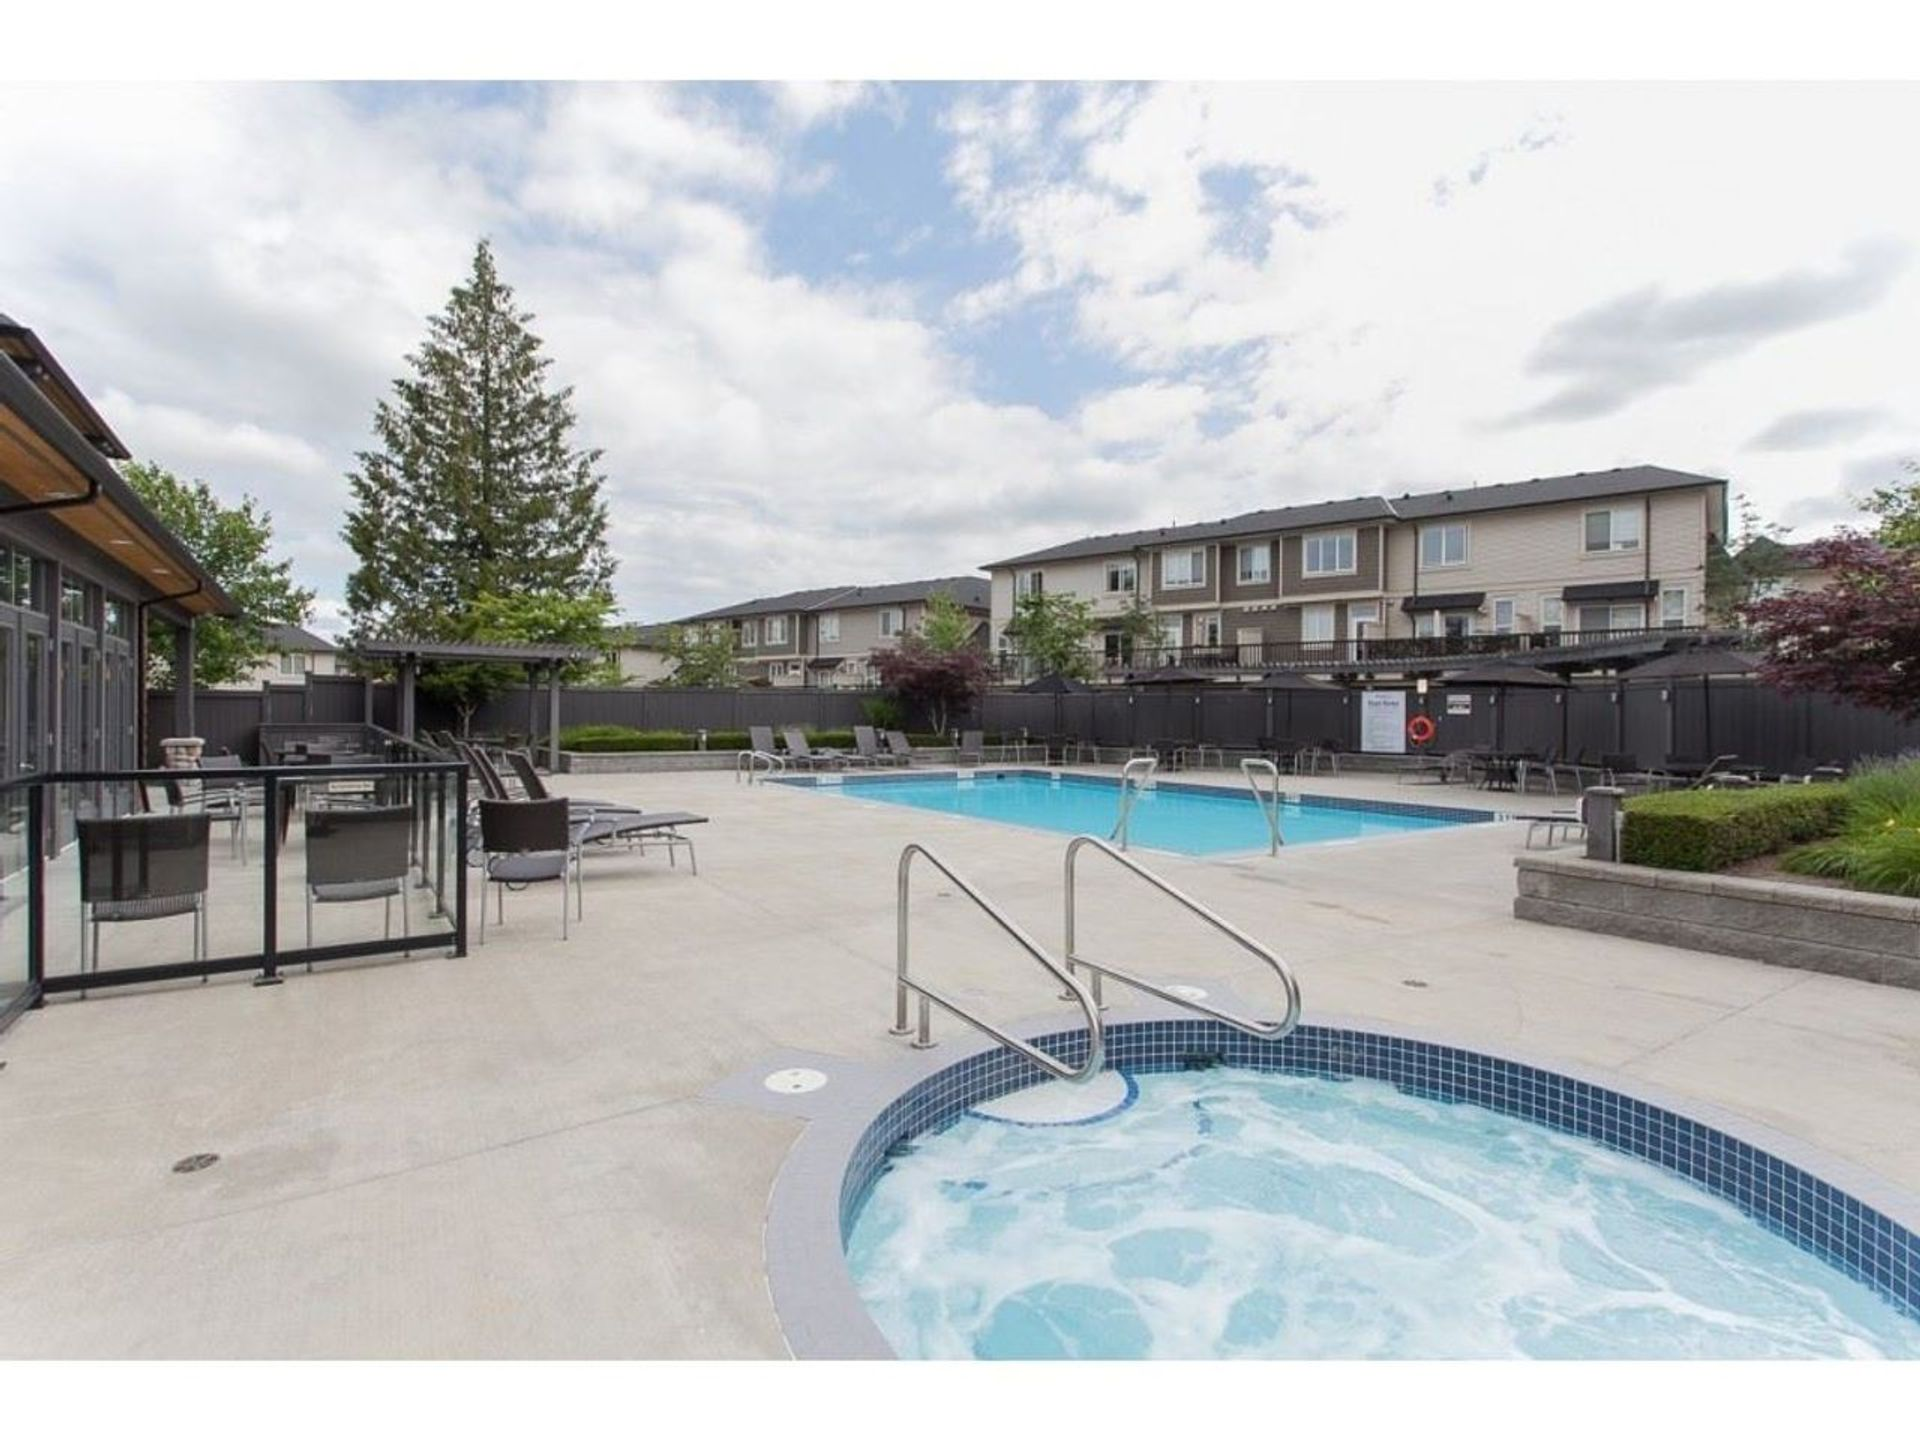 7938-210-street-willoughby-heights-langley-39 at 10 - 7938 209 Street, Willoughby Heights, Langley